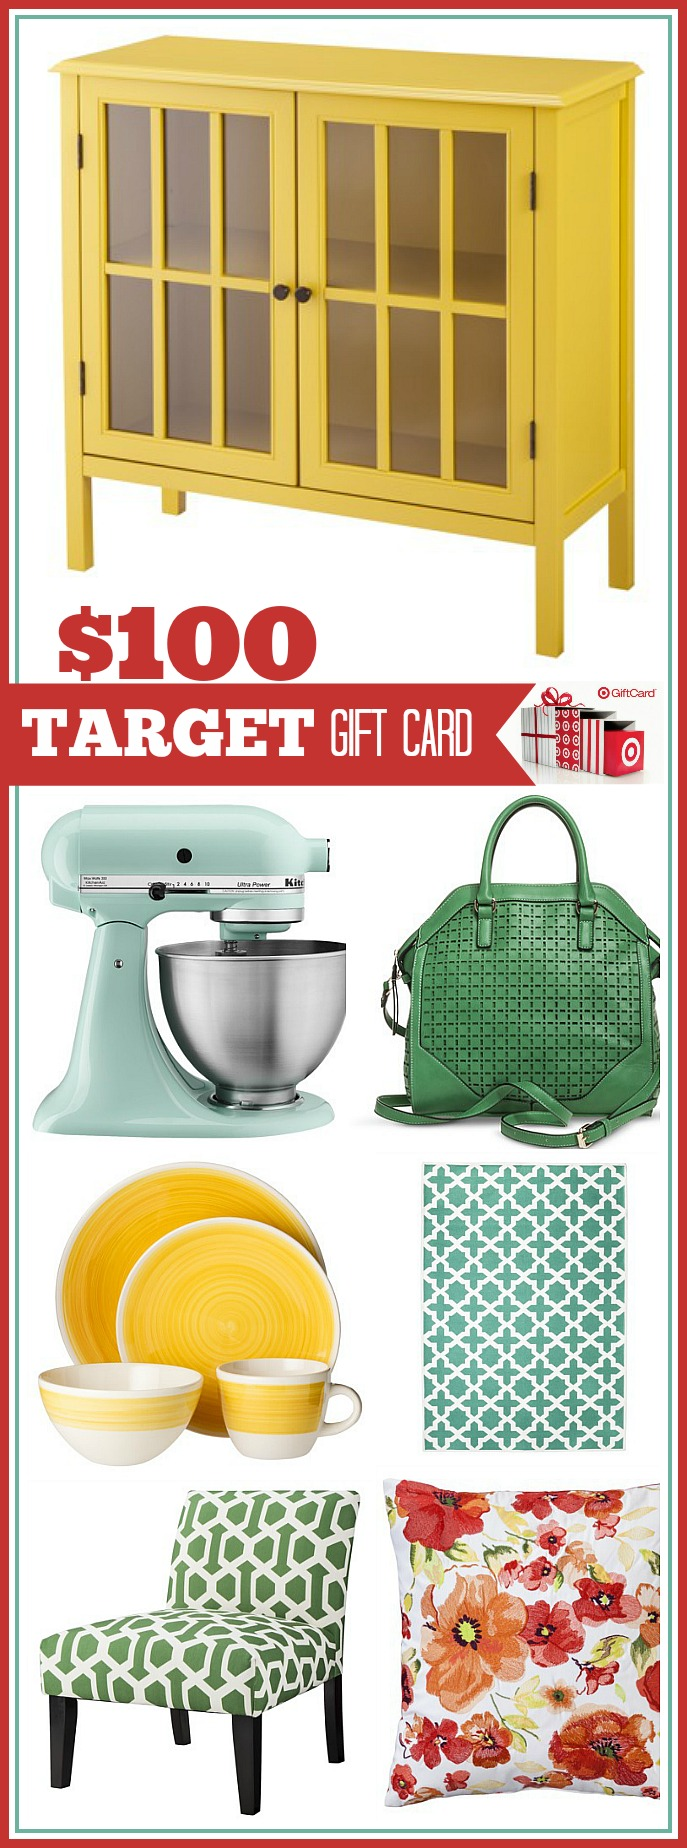 Click on the image to visit the36thavenue.com and enter to win $100 Target Gift Card GIVEAWAY!